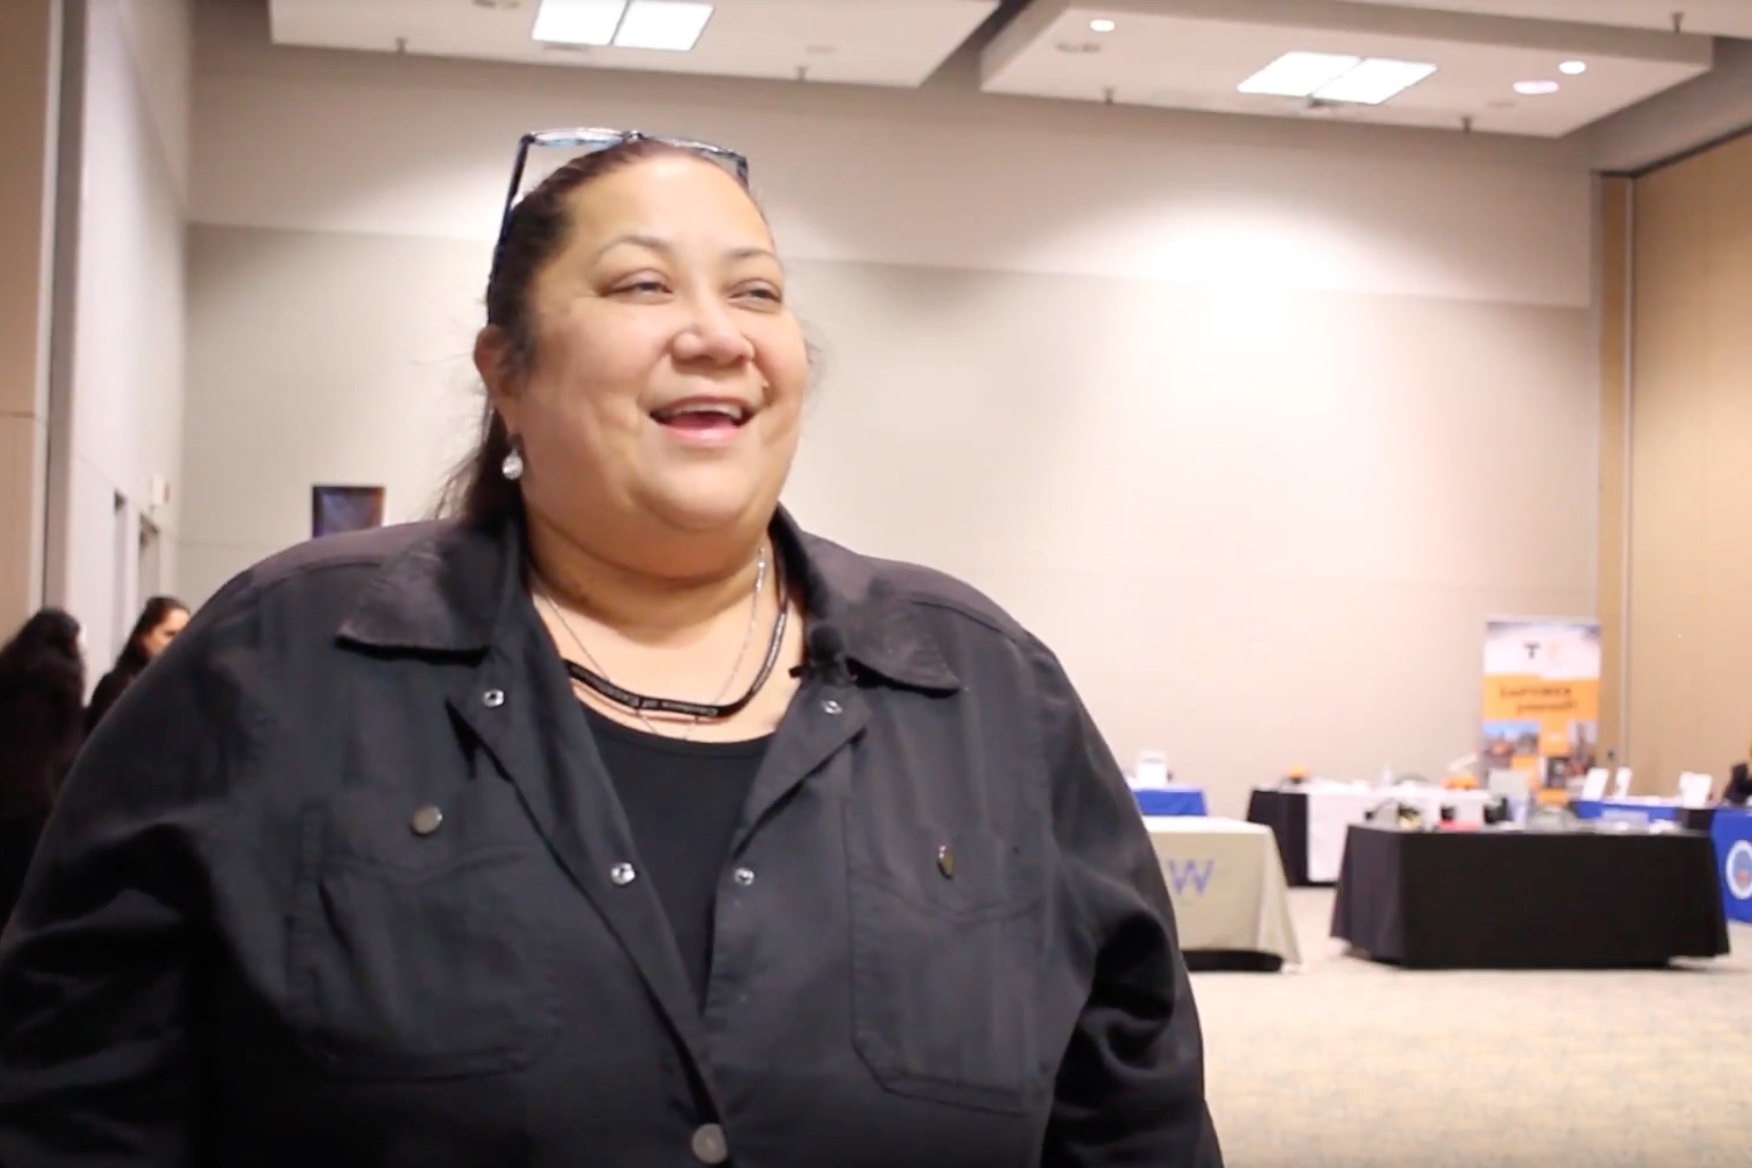 Video still of smiling woman in black shirt.